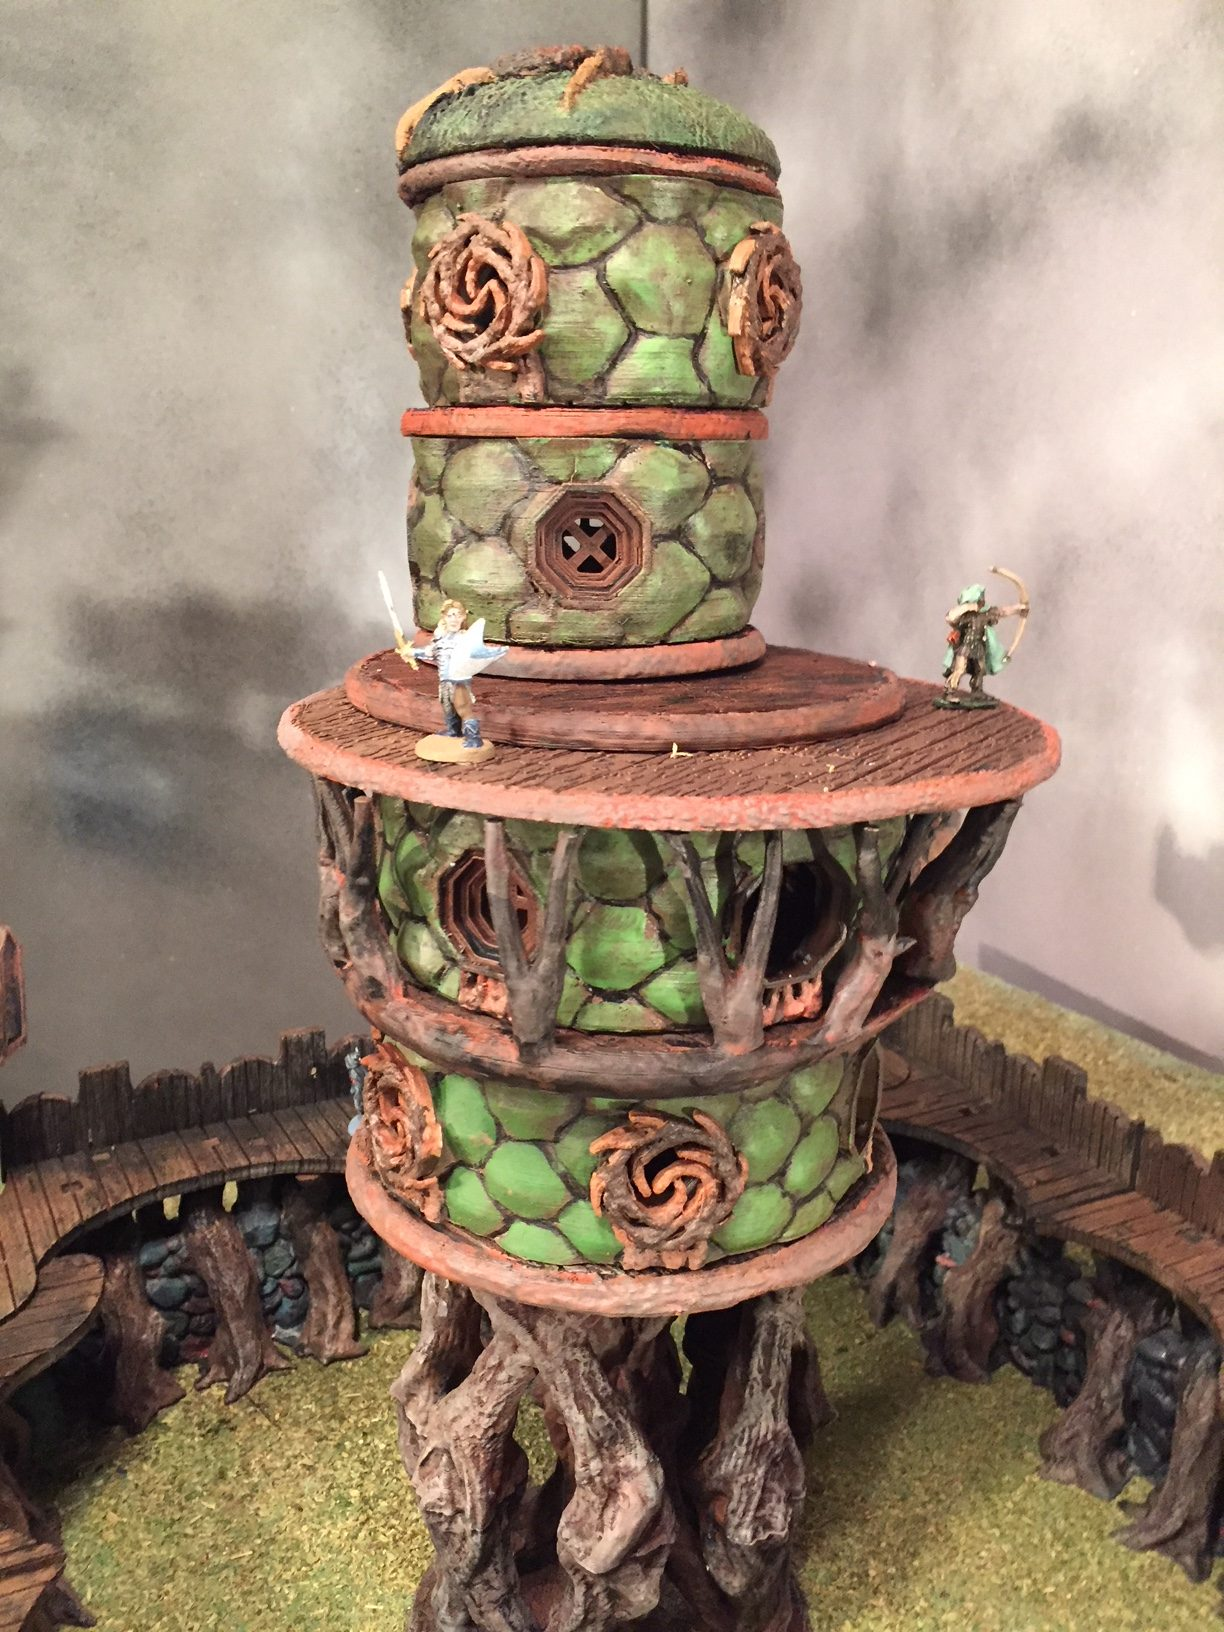 Great terrain for warhammer fantasy setting